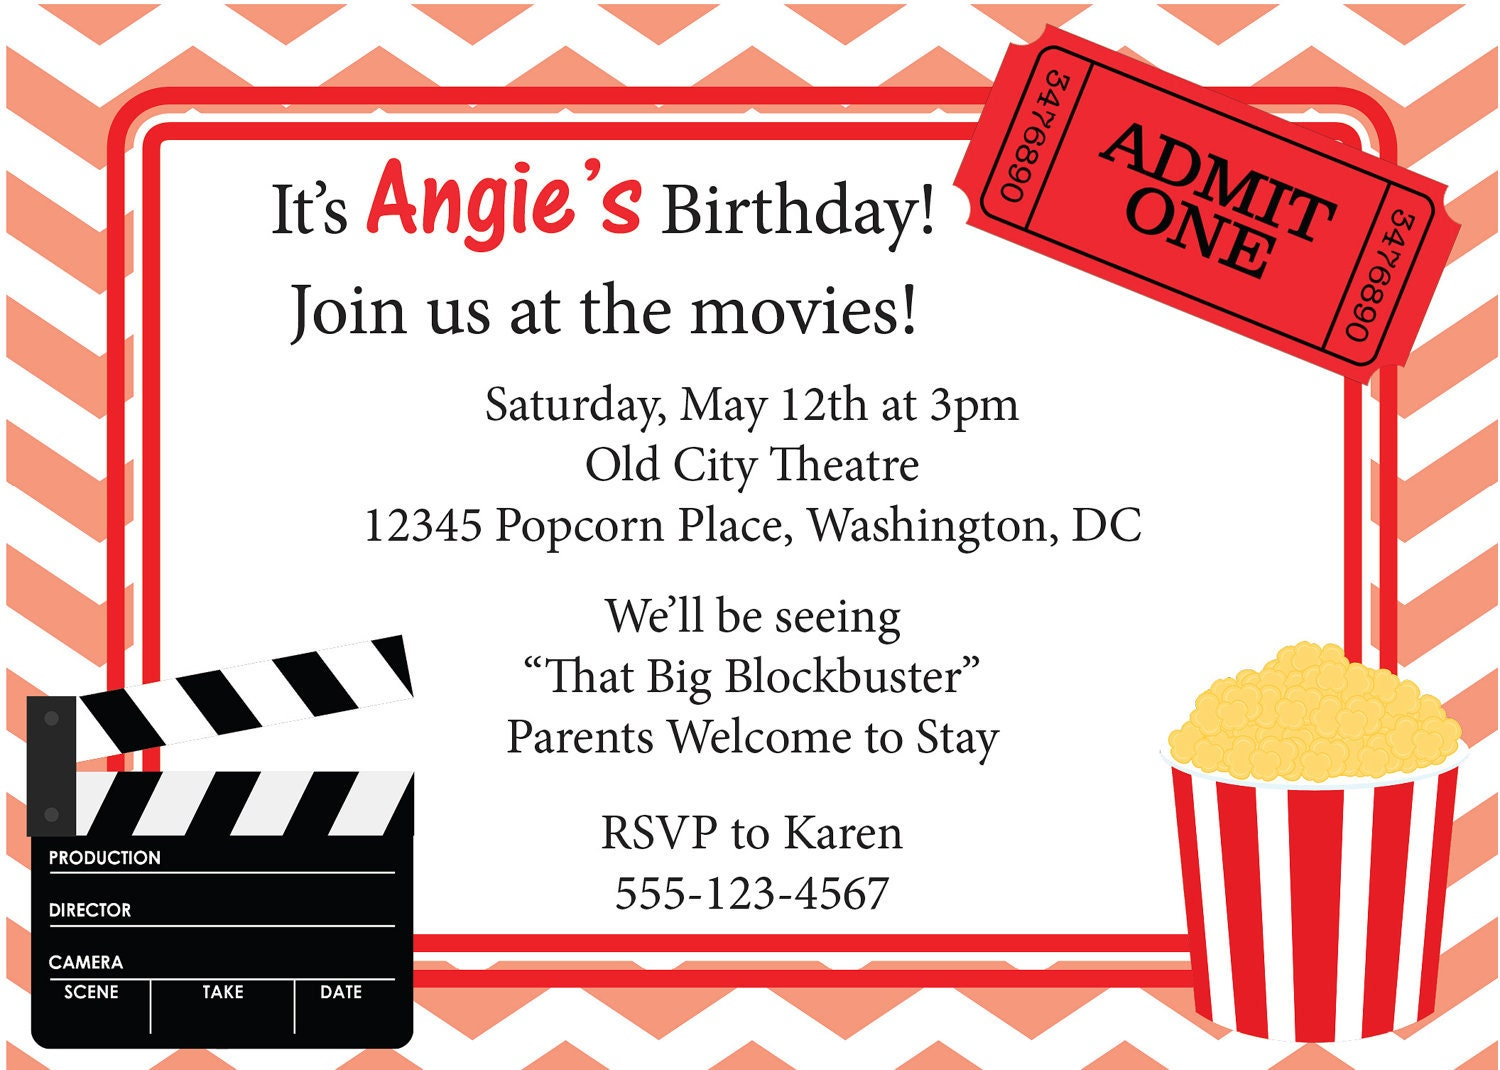 movie night invitation birthday invite diy by cowprintdesigns. Black Bedroom Furniture Sets. Home Design Ideas